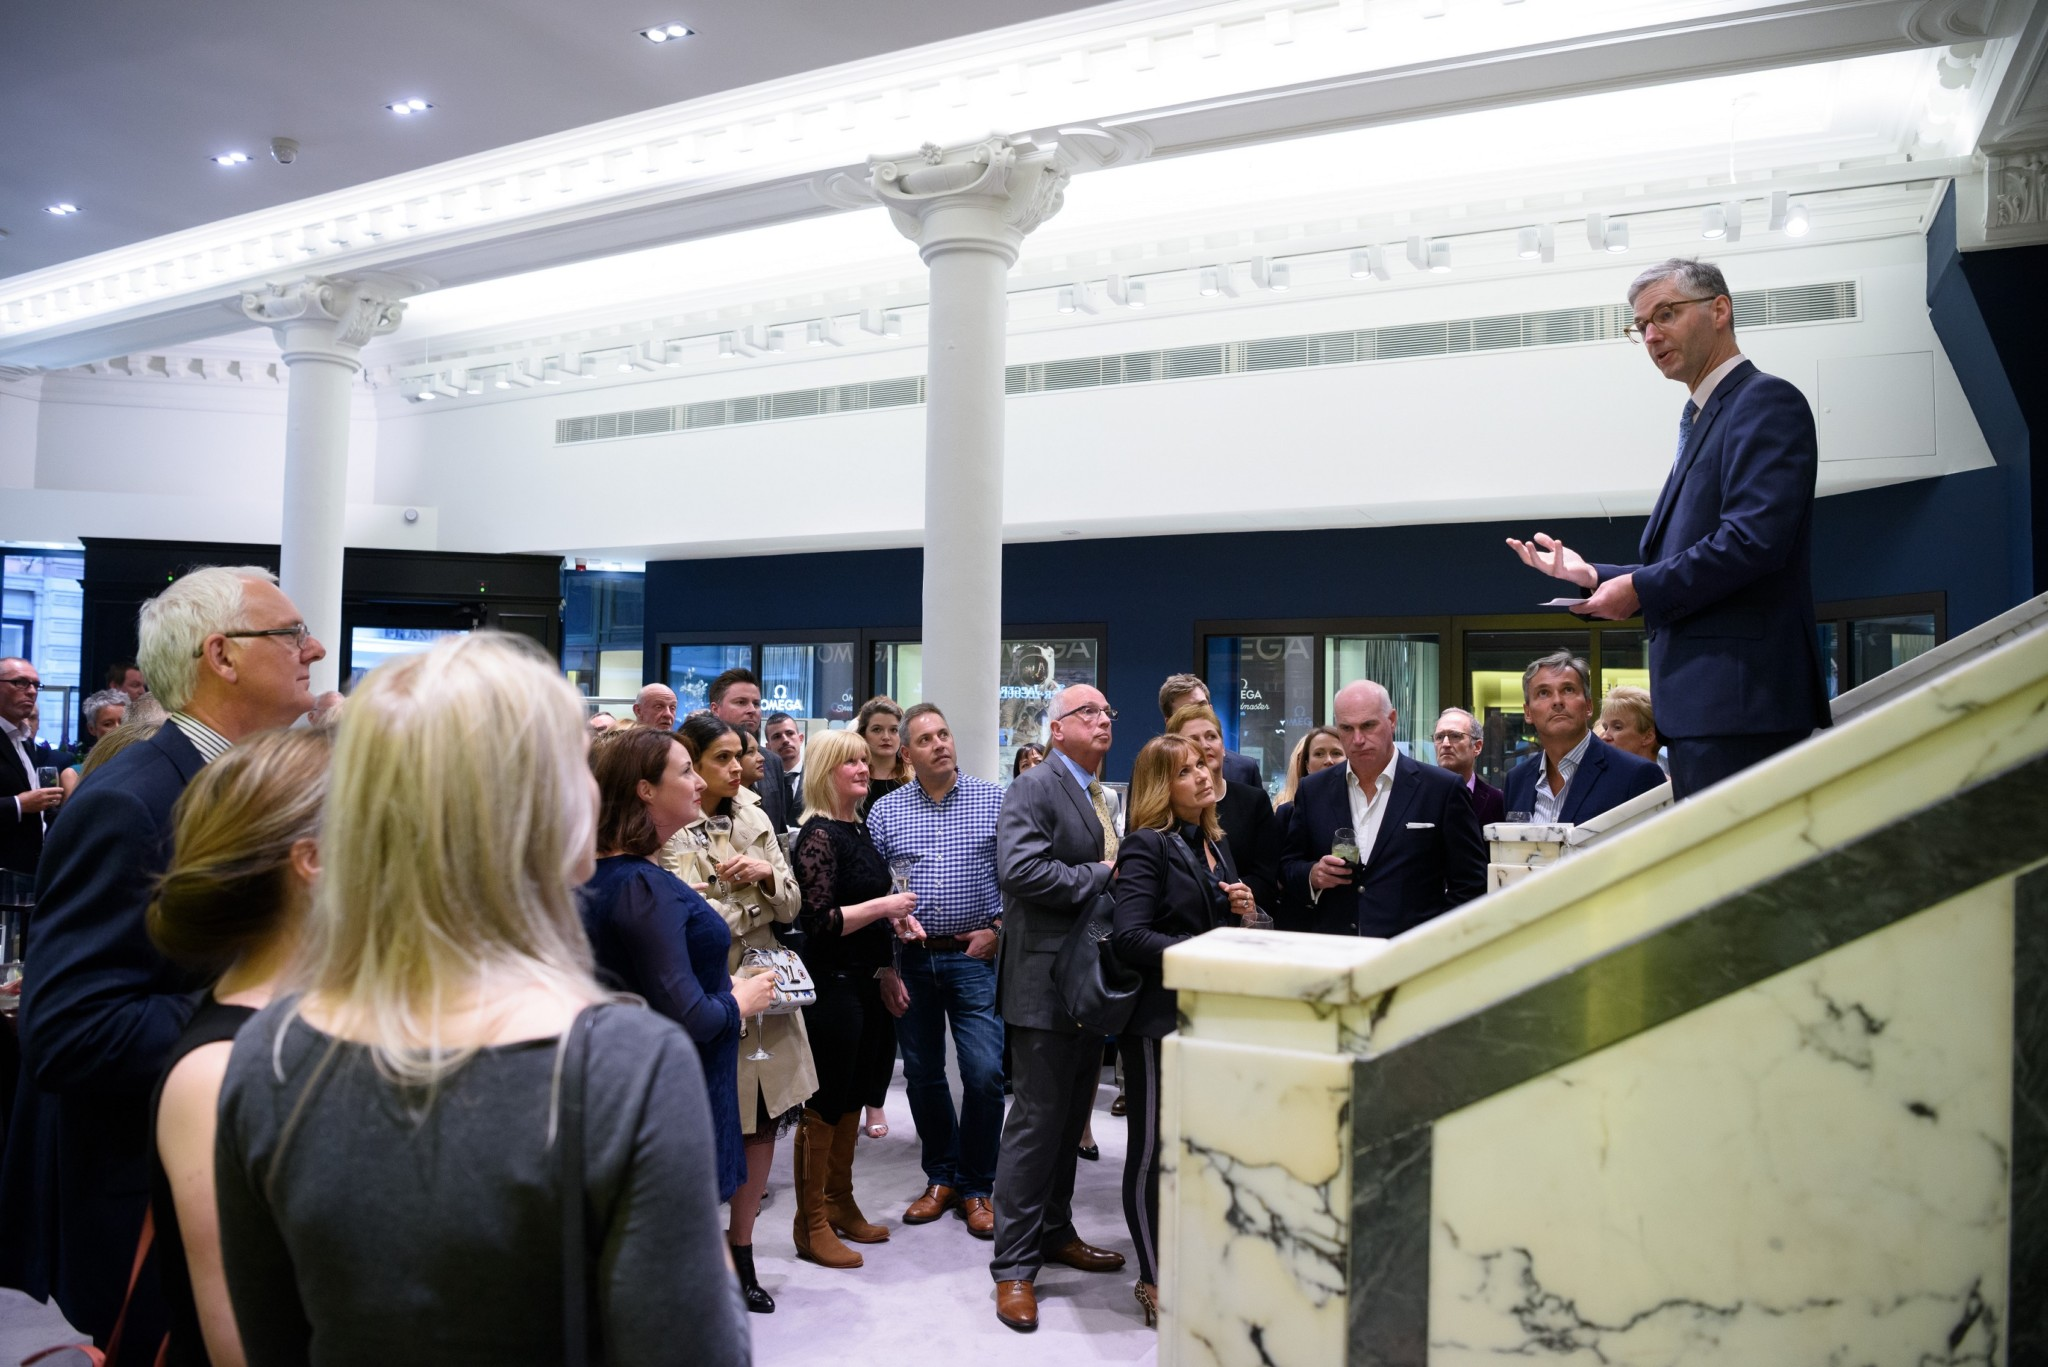 Mappin & Webb Glasgow boutique manager Jamie Fraser's speech